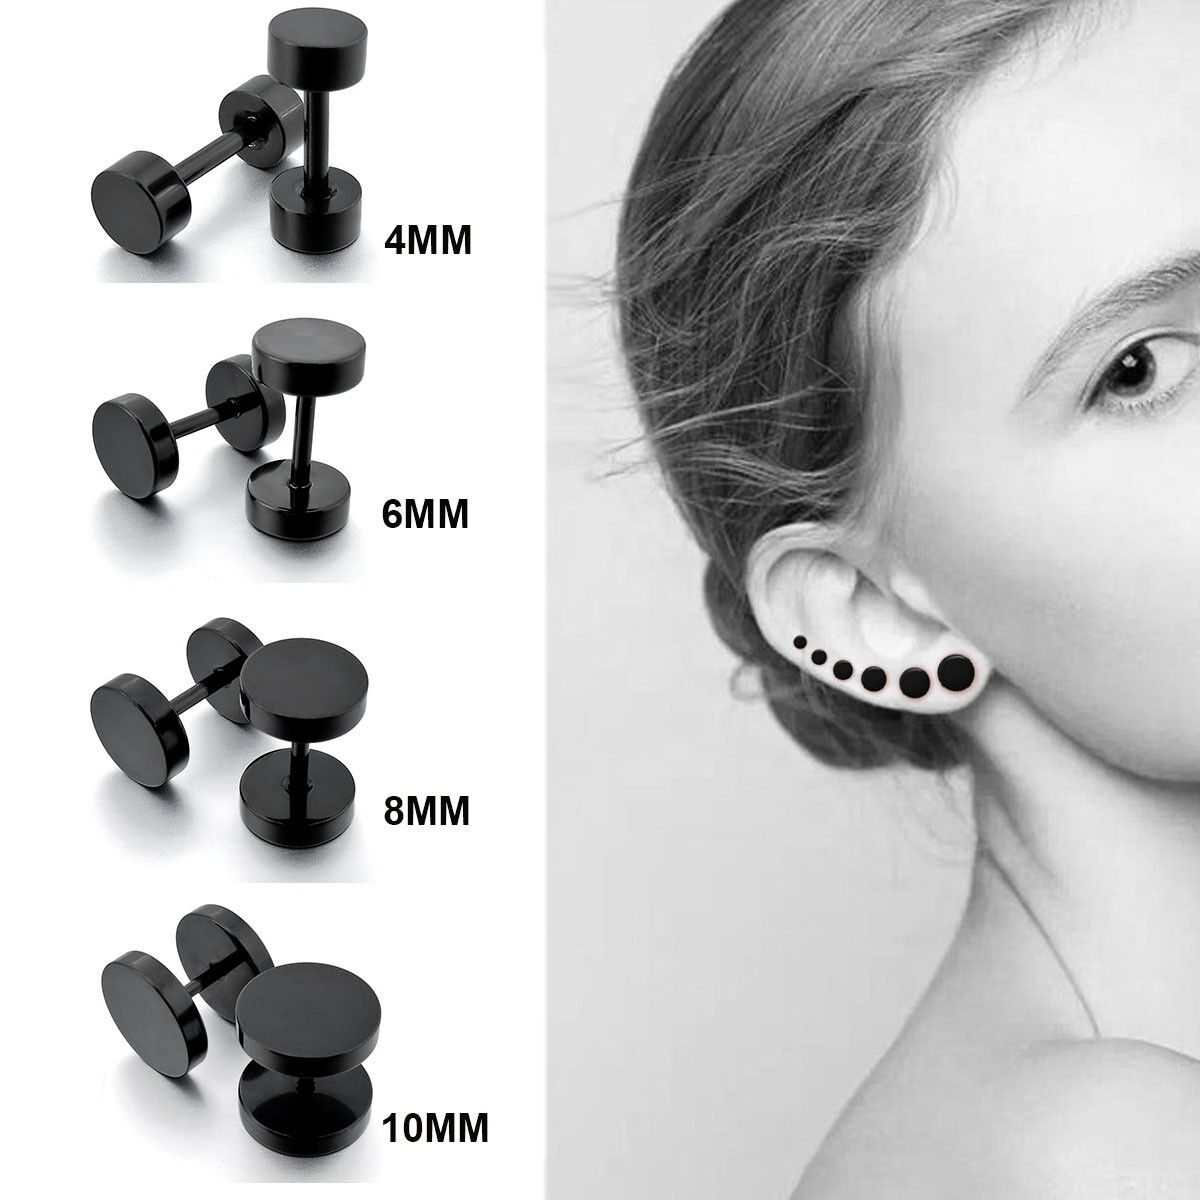 Punk Round Barbell Dumbbell Men's Women's Stainless Steel Ear Stud Earrings US Earrings